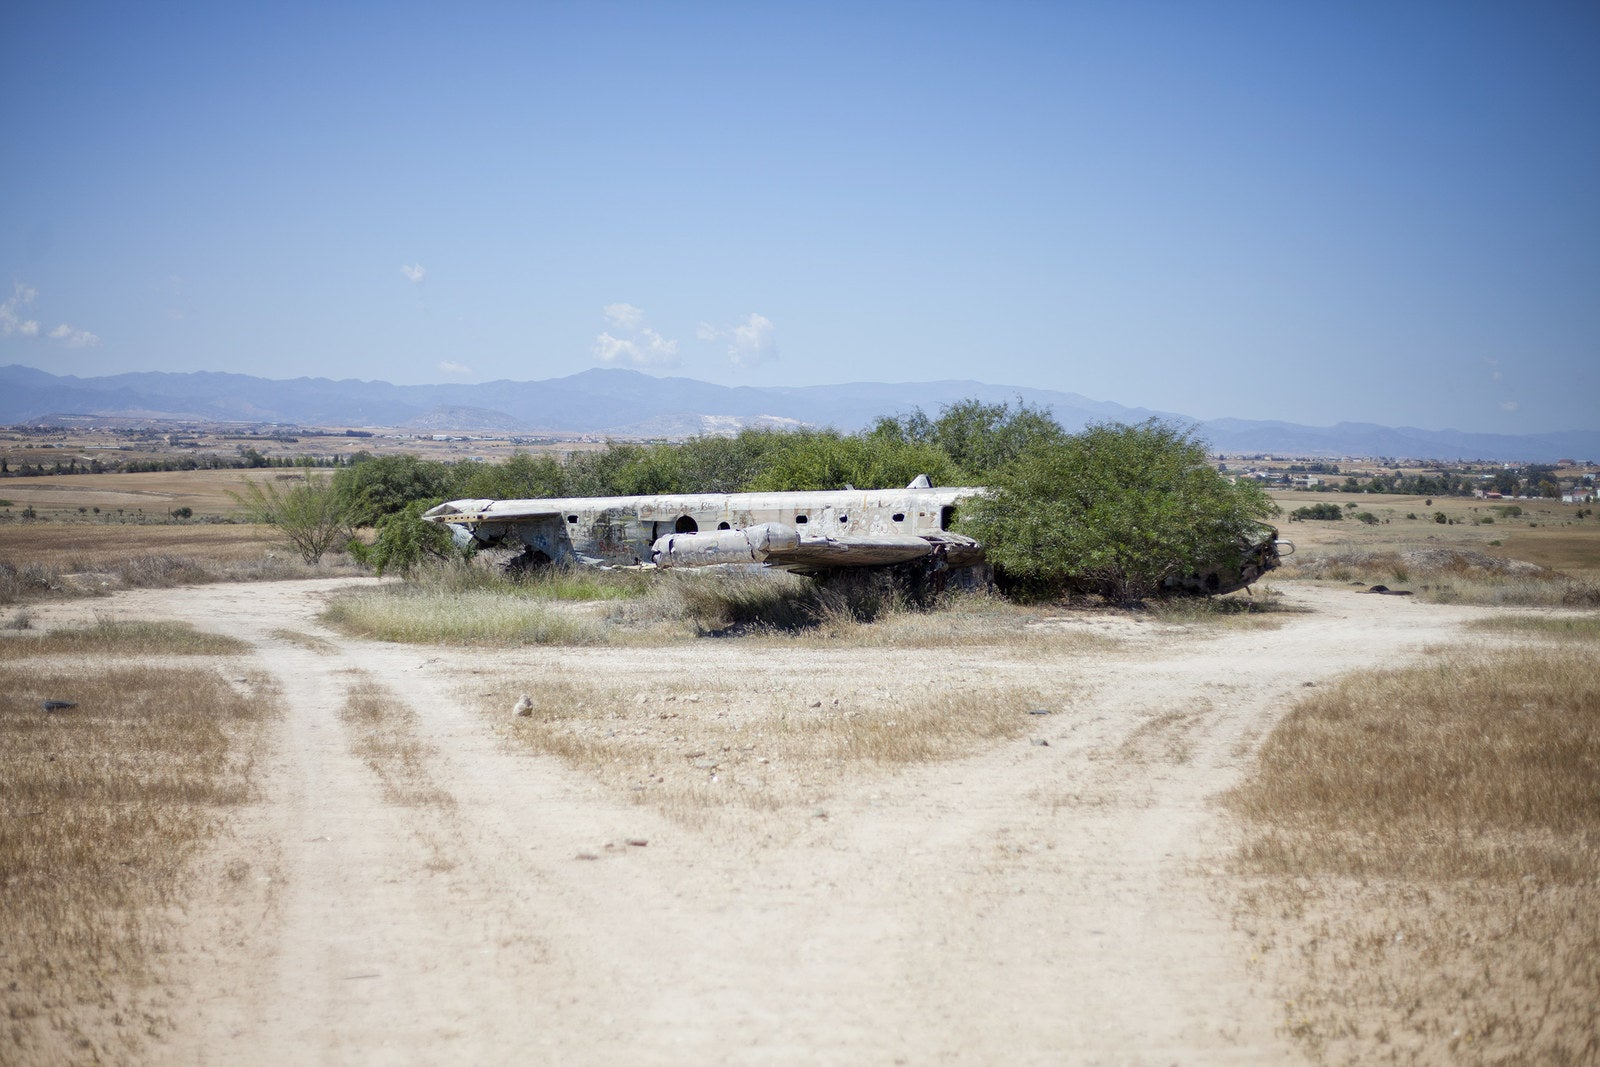 Remains of an Avro Shackleton aircraft is reclaimed by brush and wilderness.